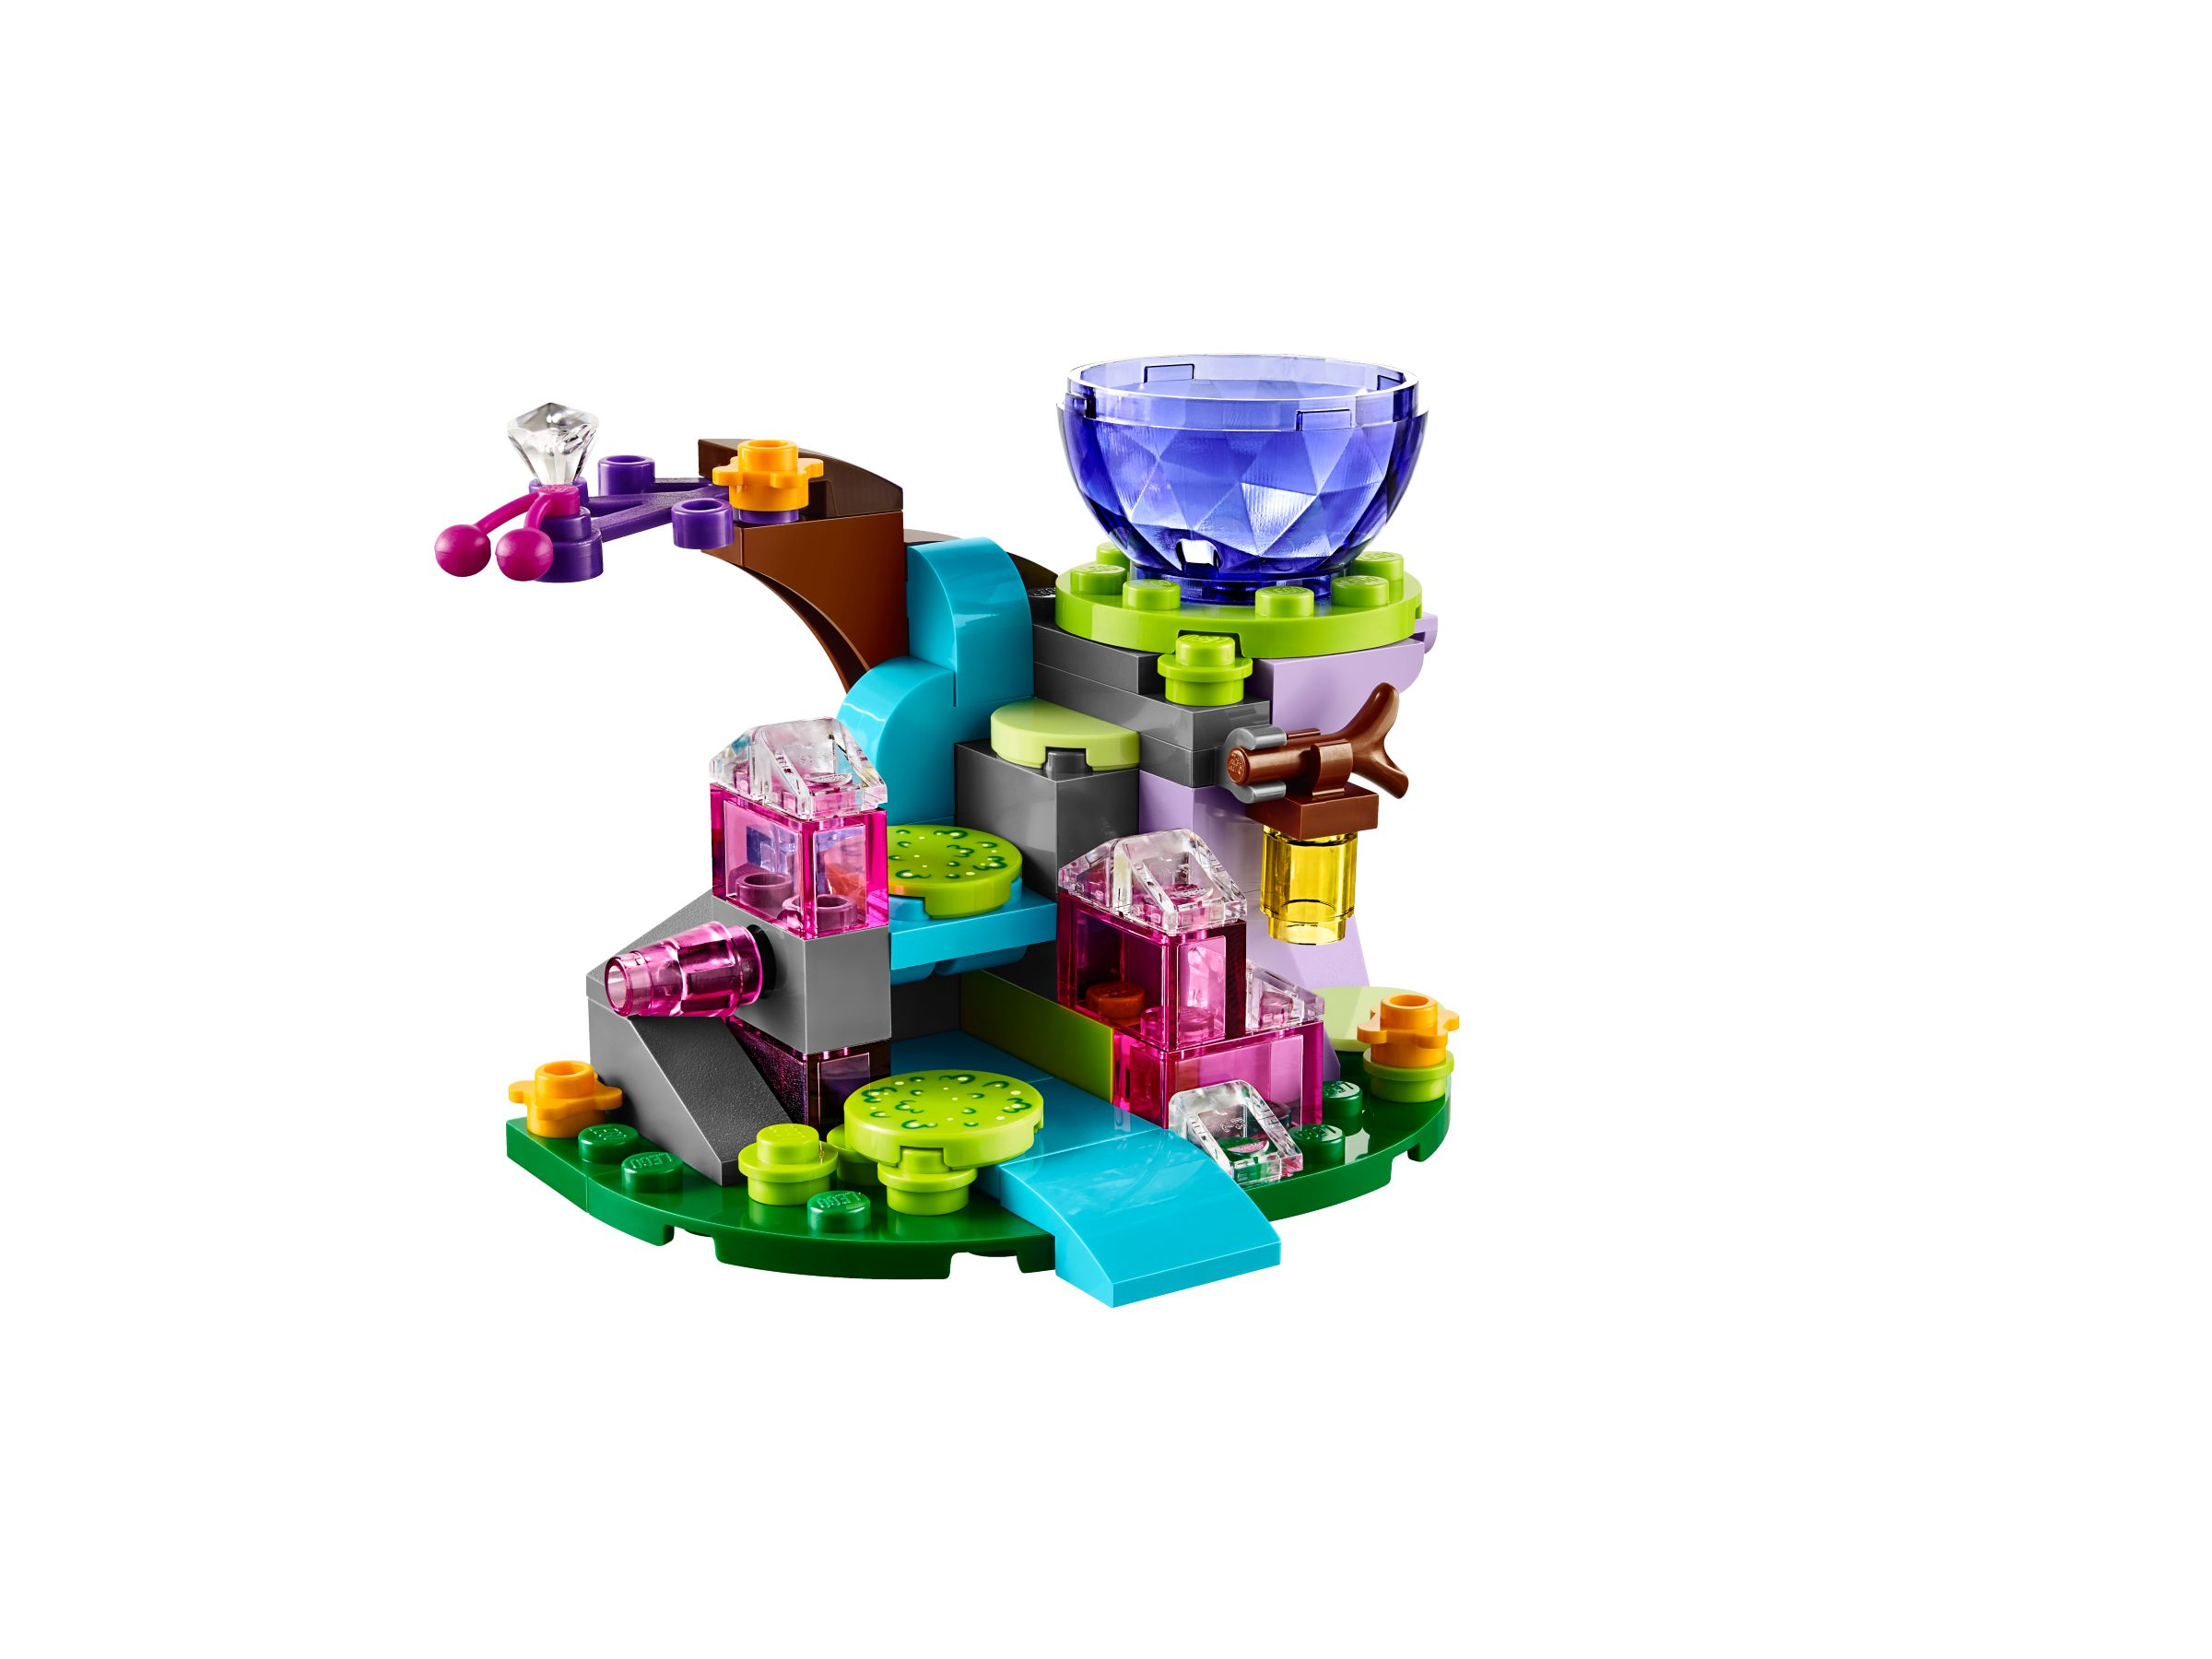 LEGO Elves 41171 Emily Jones & das Winddrachen-Baby LEGO_41171_alt2.jpg